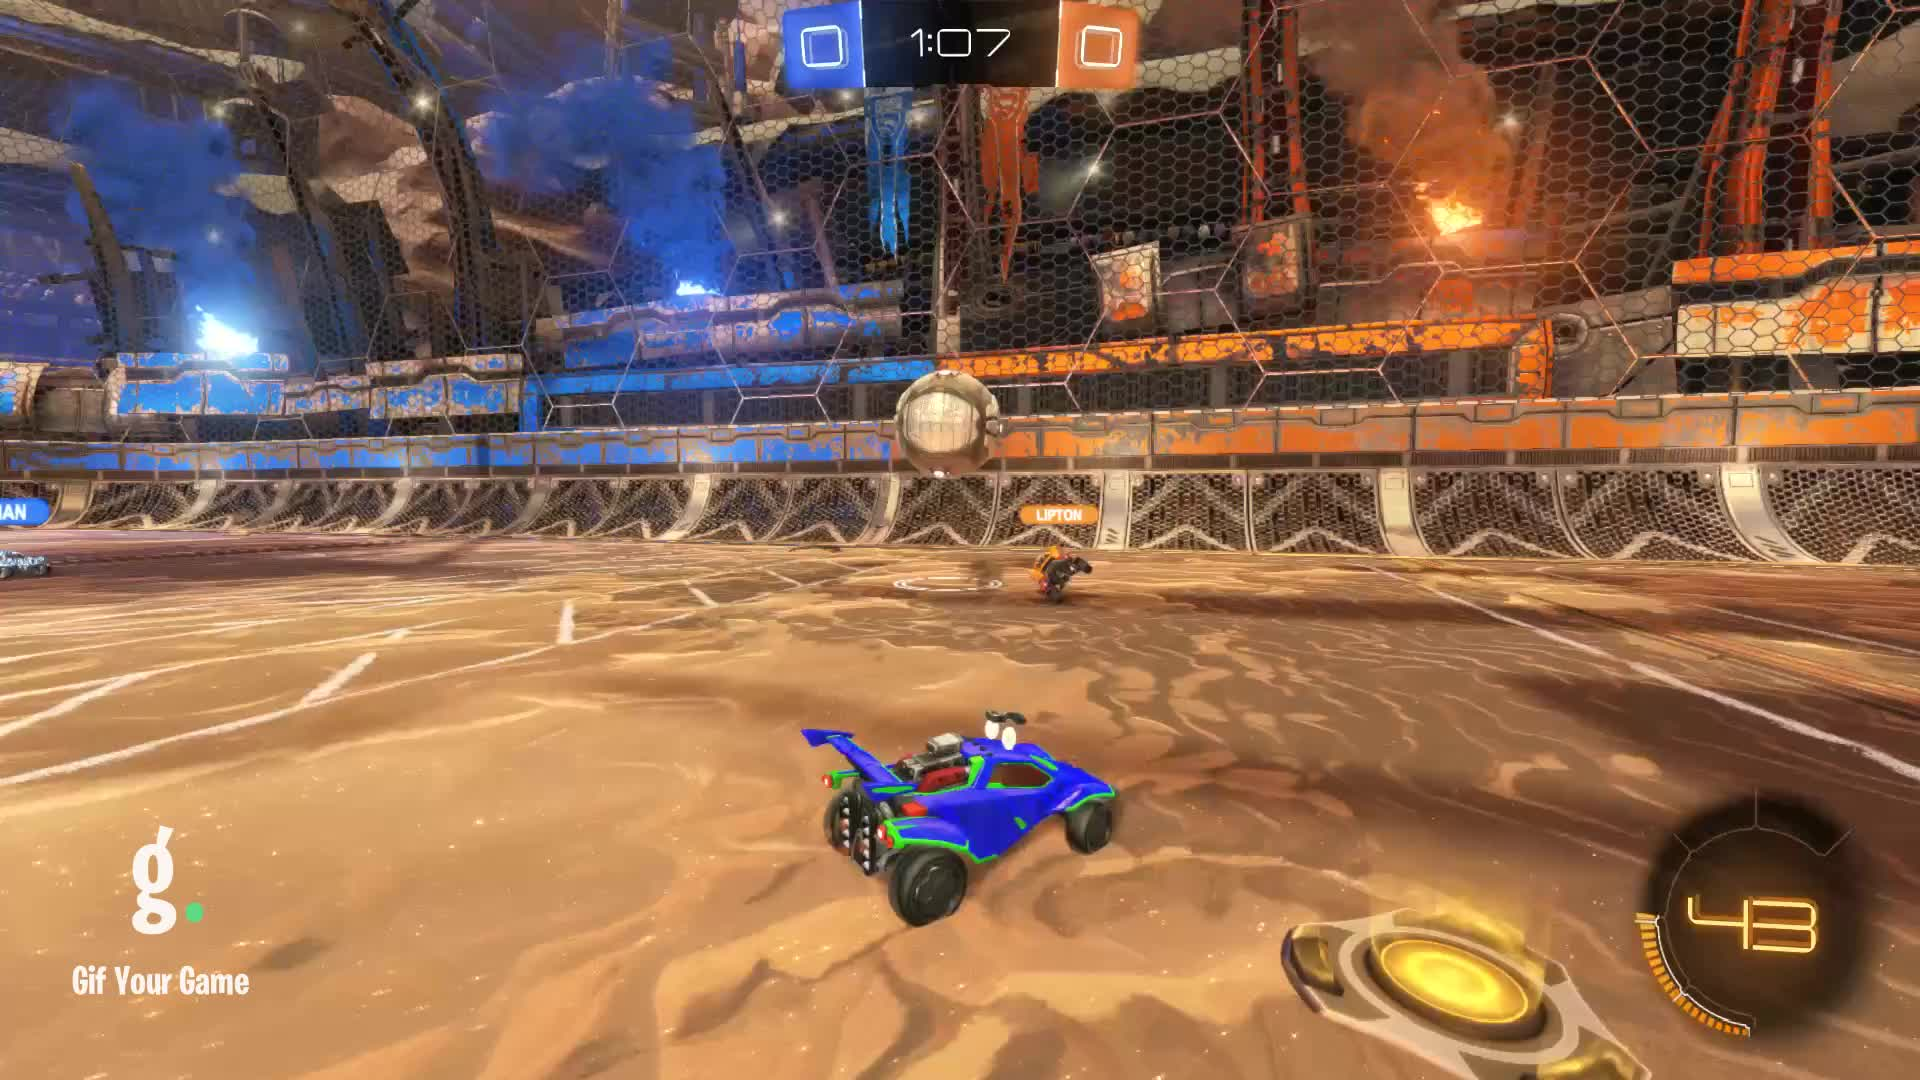 Gif Your Game, GifYourGame, Goal, NABODEH, Rocket League, RocketLeague, Goal 1: NABODEH GIFs